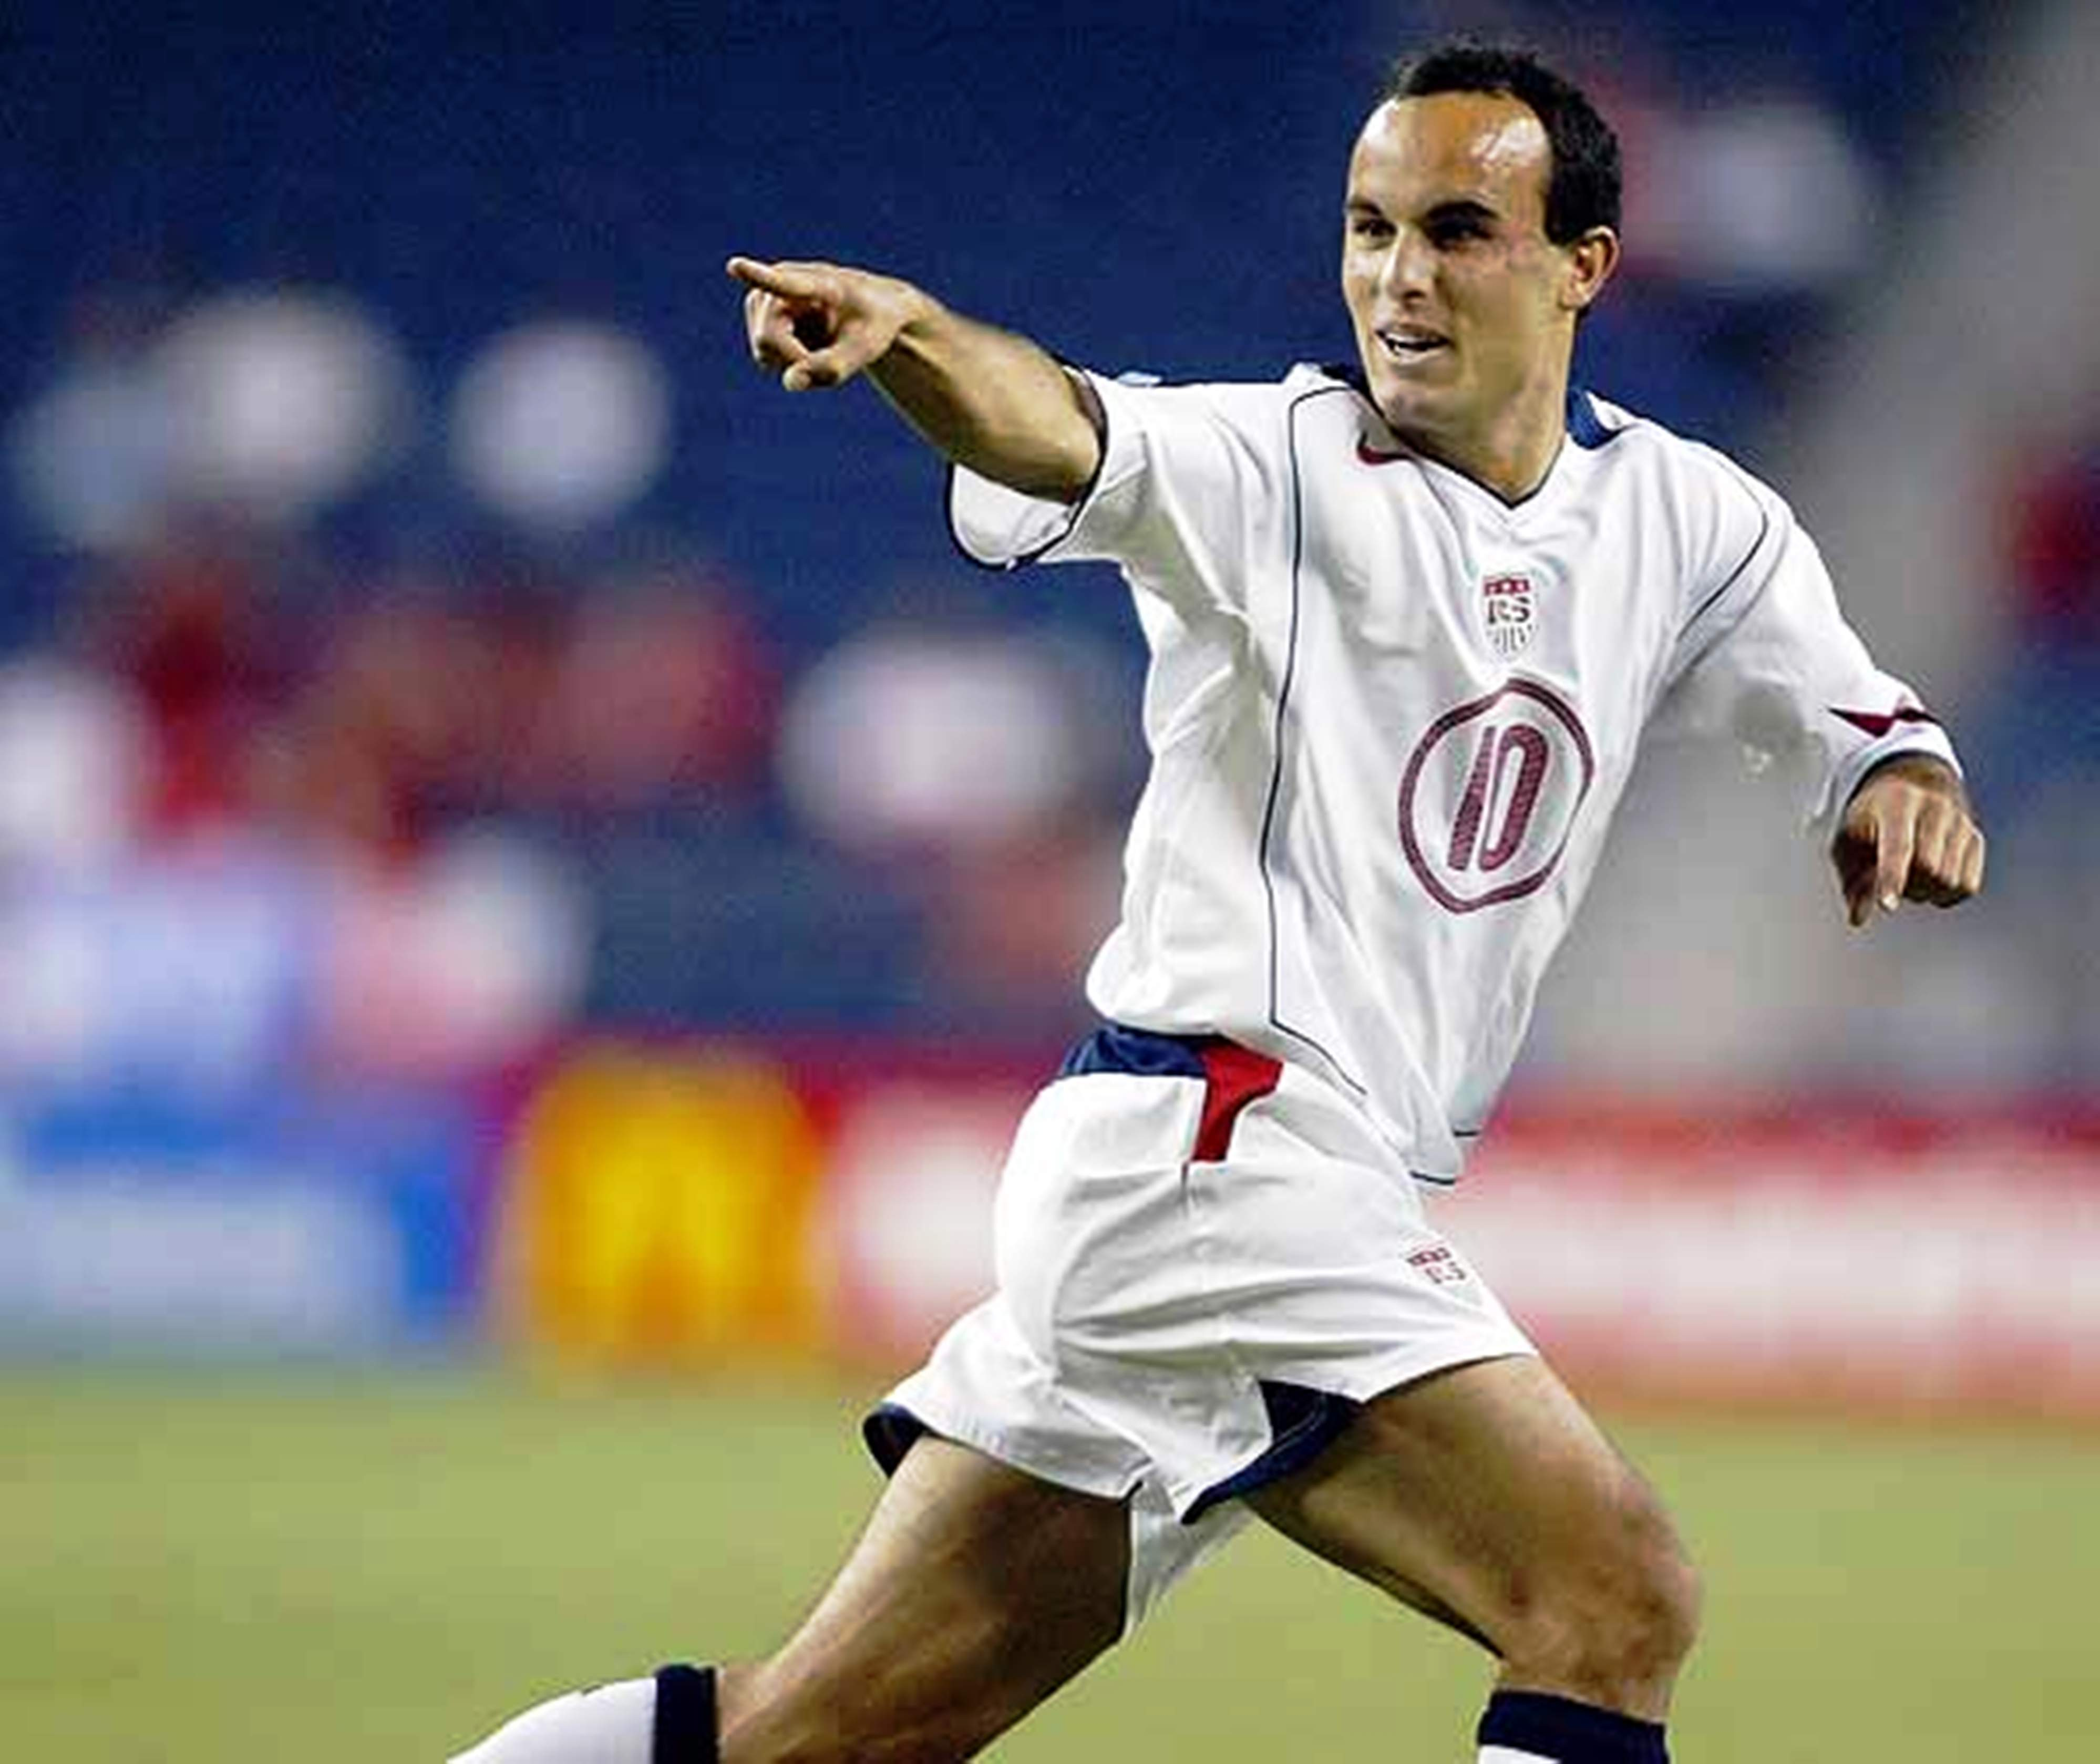 Landon Donovan Goal HD Wallpaper | Soccer Wallpapers